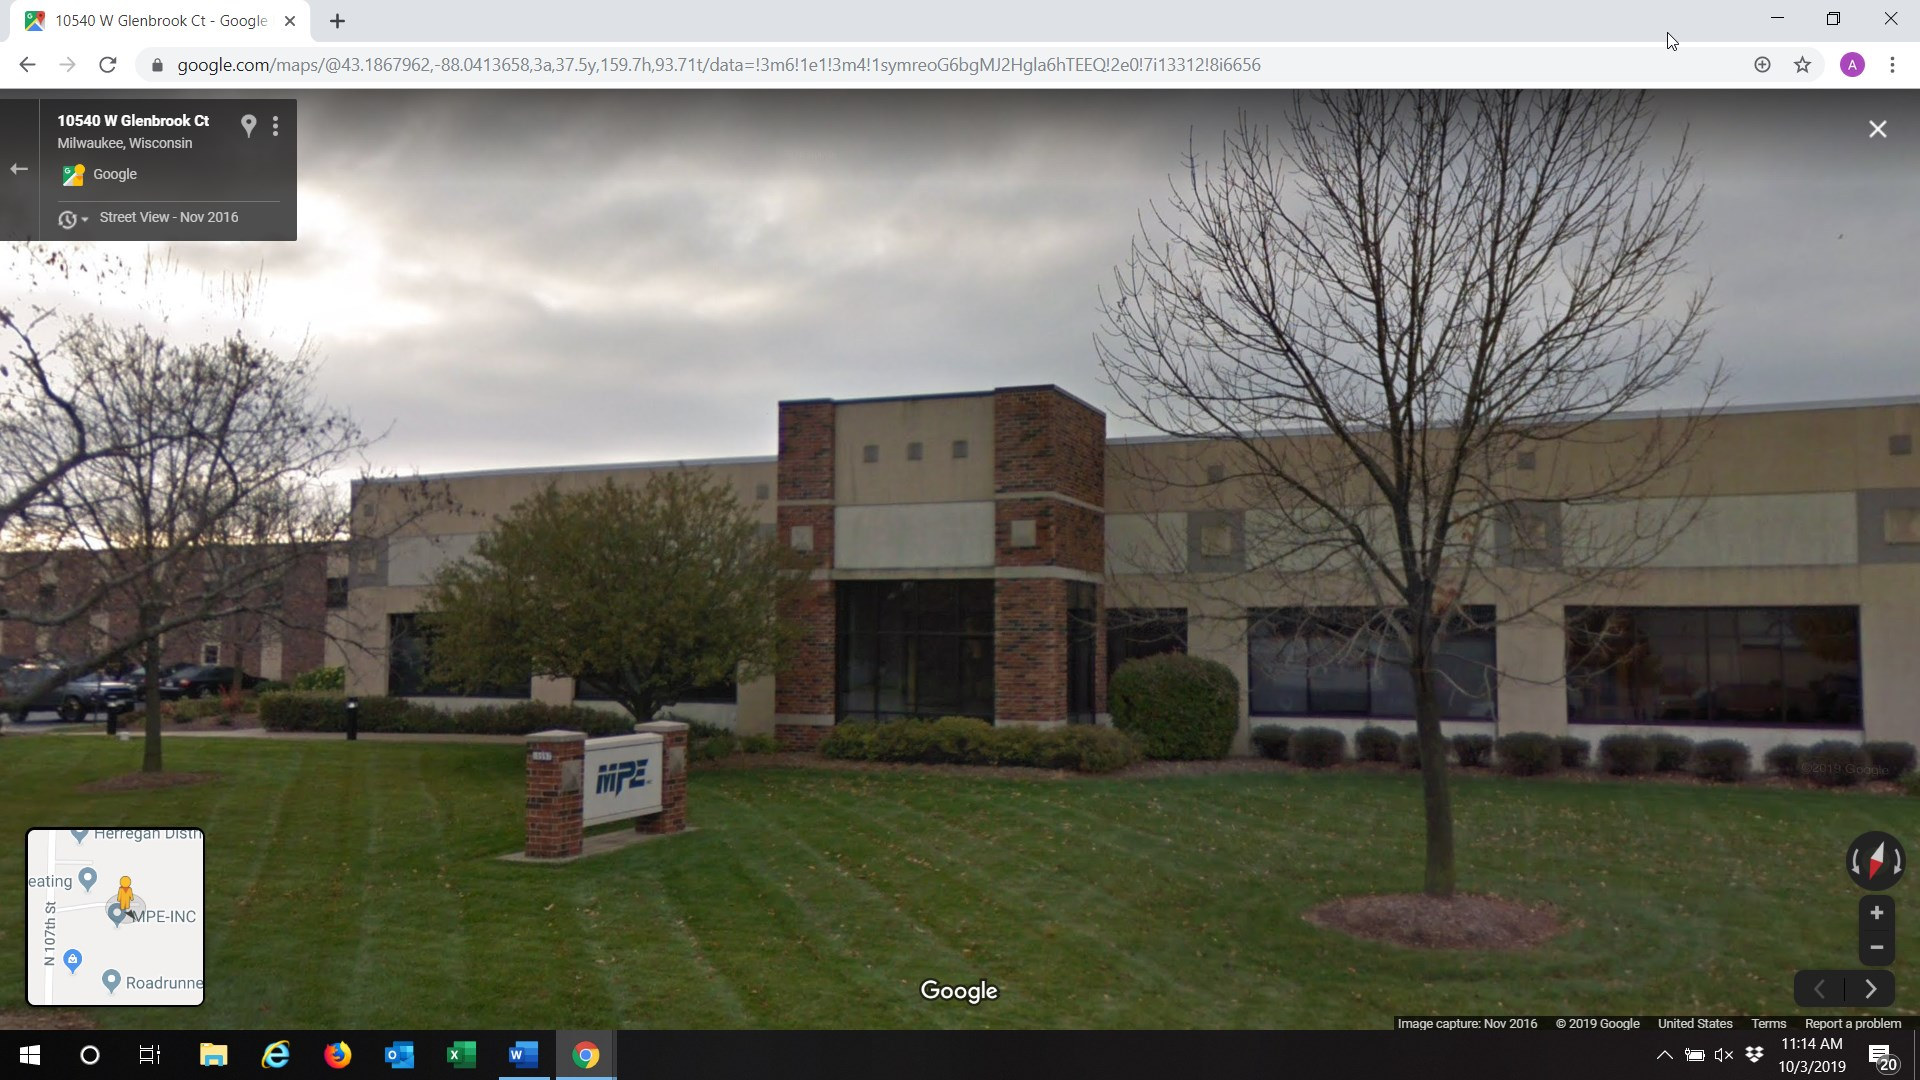 MPE building. Image from Google.